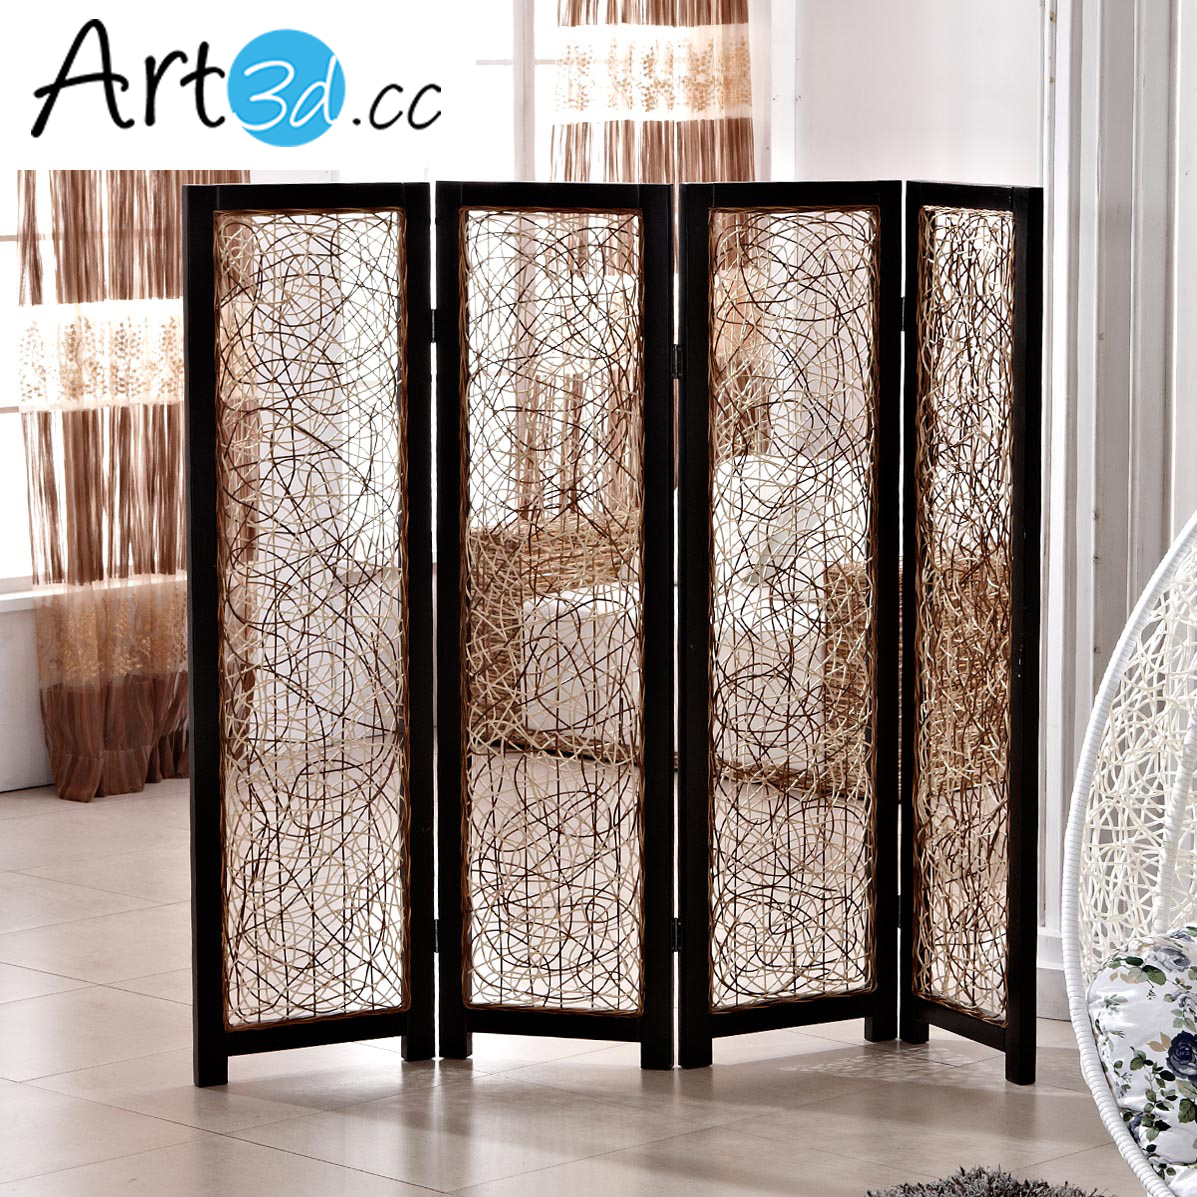 A42003 Folding Screen Walls 1 Set 4 Panels